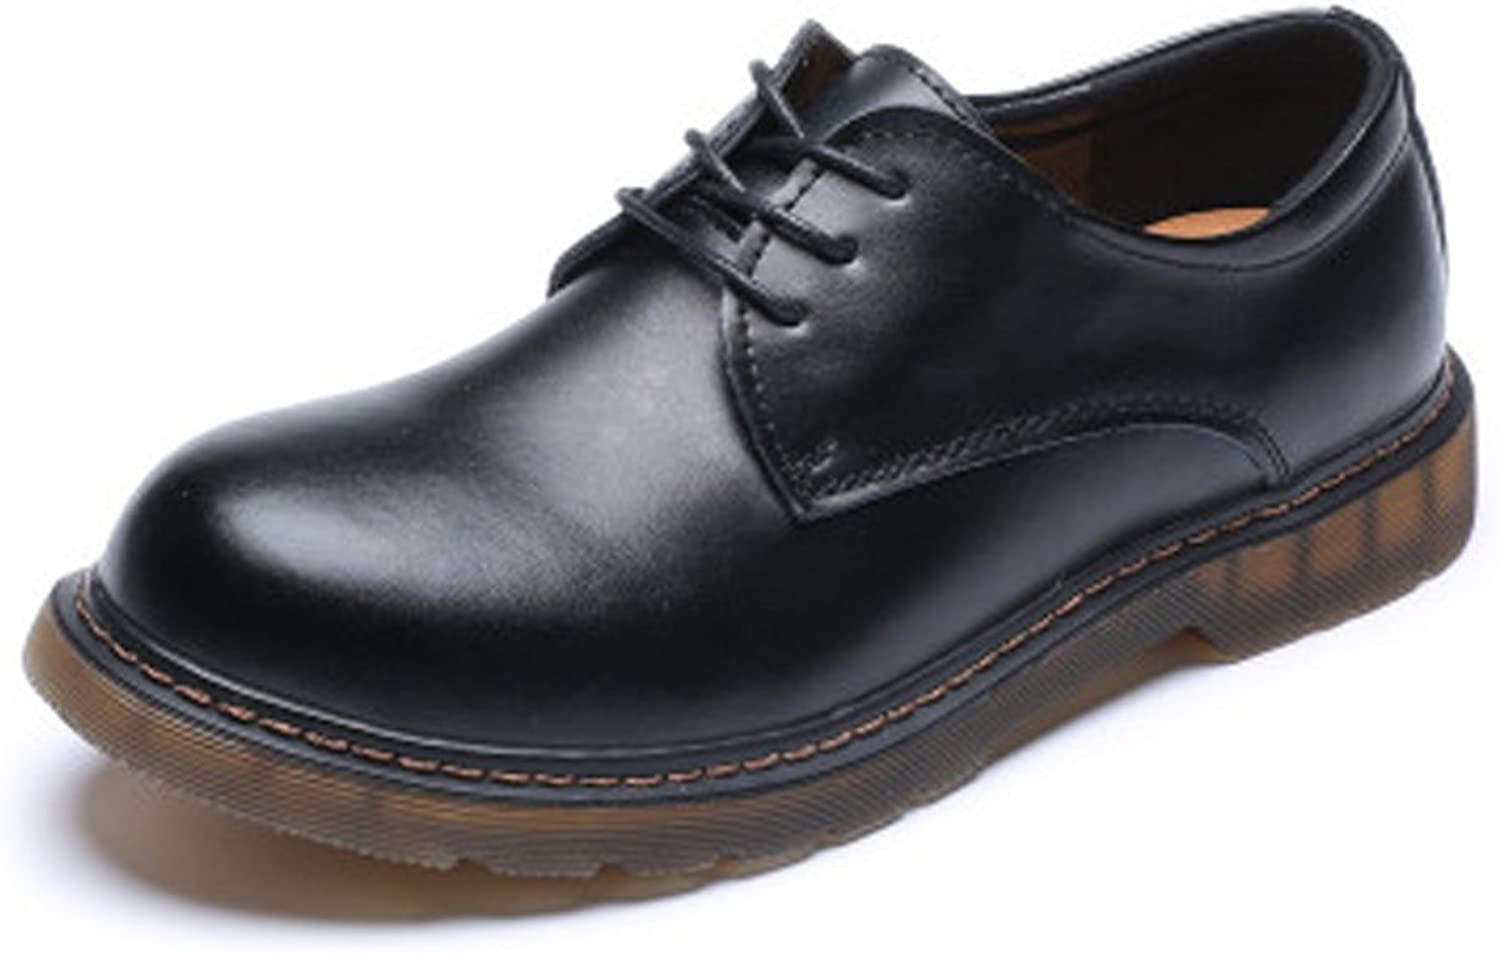 SRY-shoes for Gentlemen Smooth Genuine Leather Outsole Low Top Ankle Boot